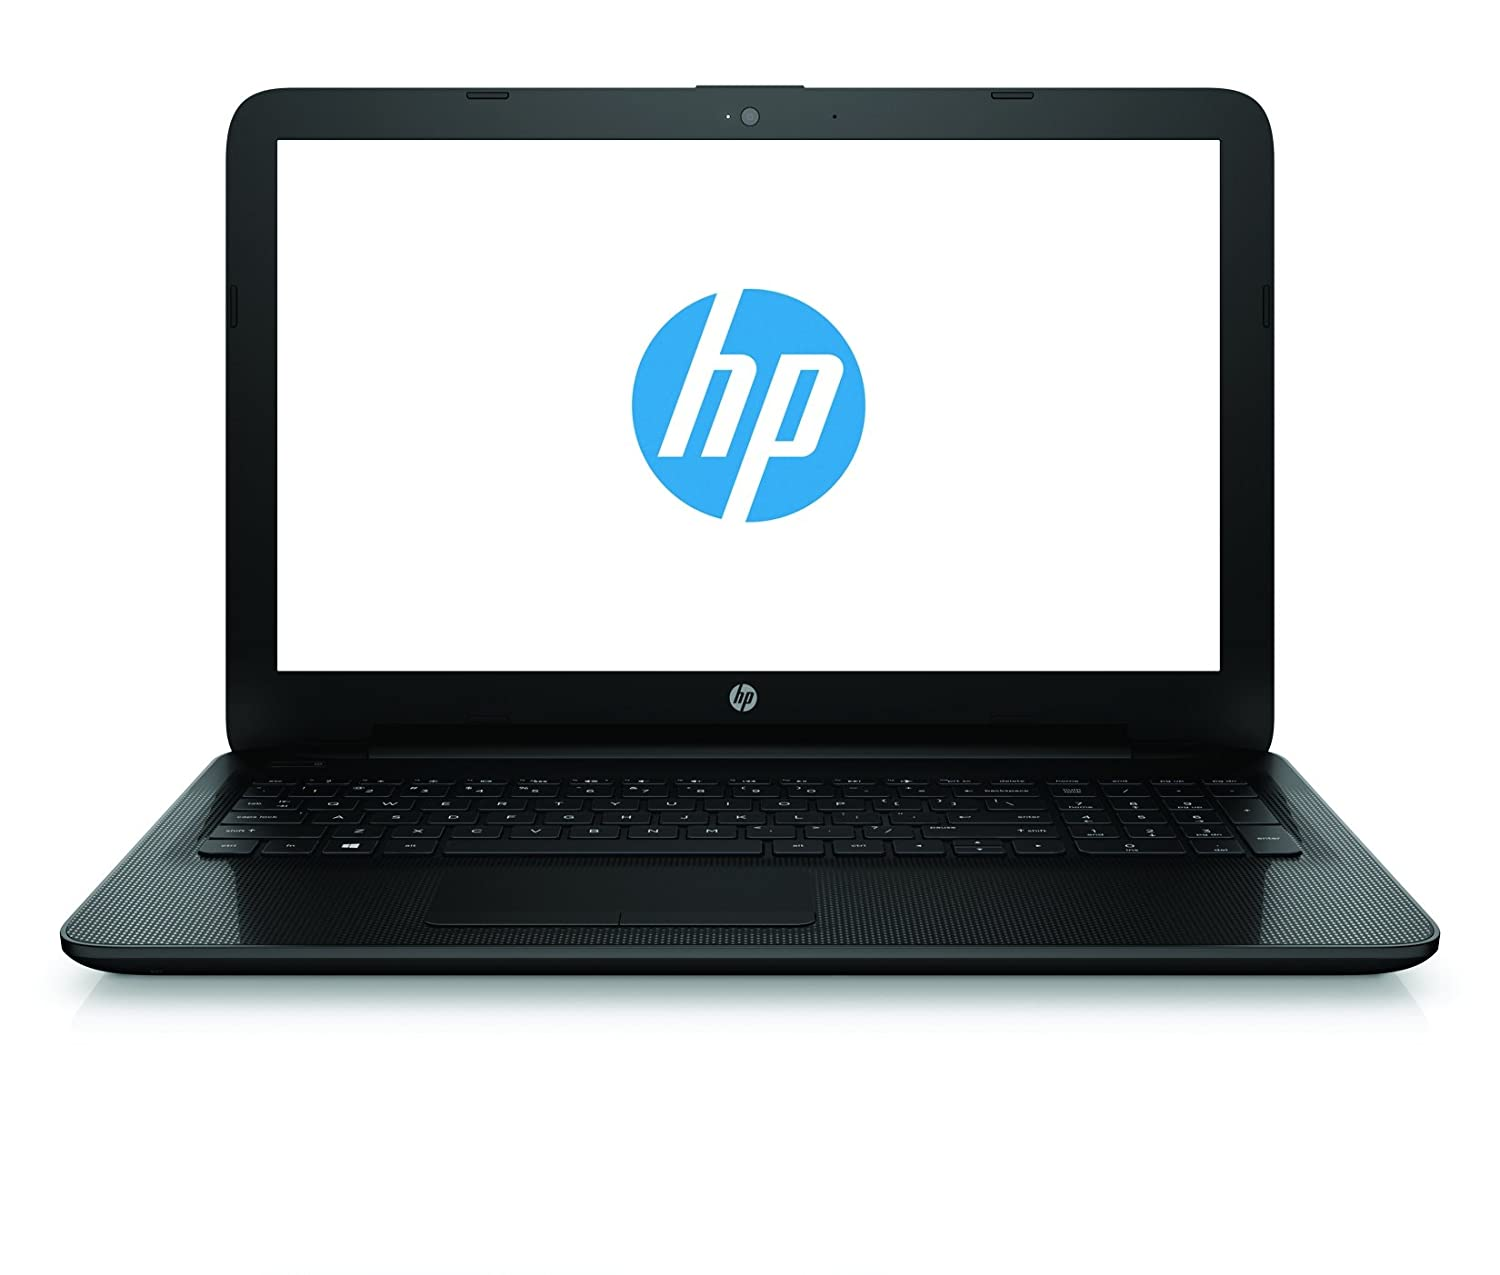 HP 15-ay000ns -Ordenador Portátil de 15.6'' HD (Intel Celeron N3060, 4 GB RAM, 500 GB HDD, Intel HD Graphics 520,...